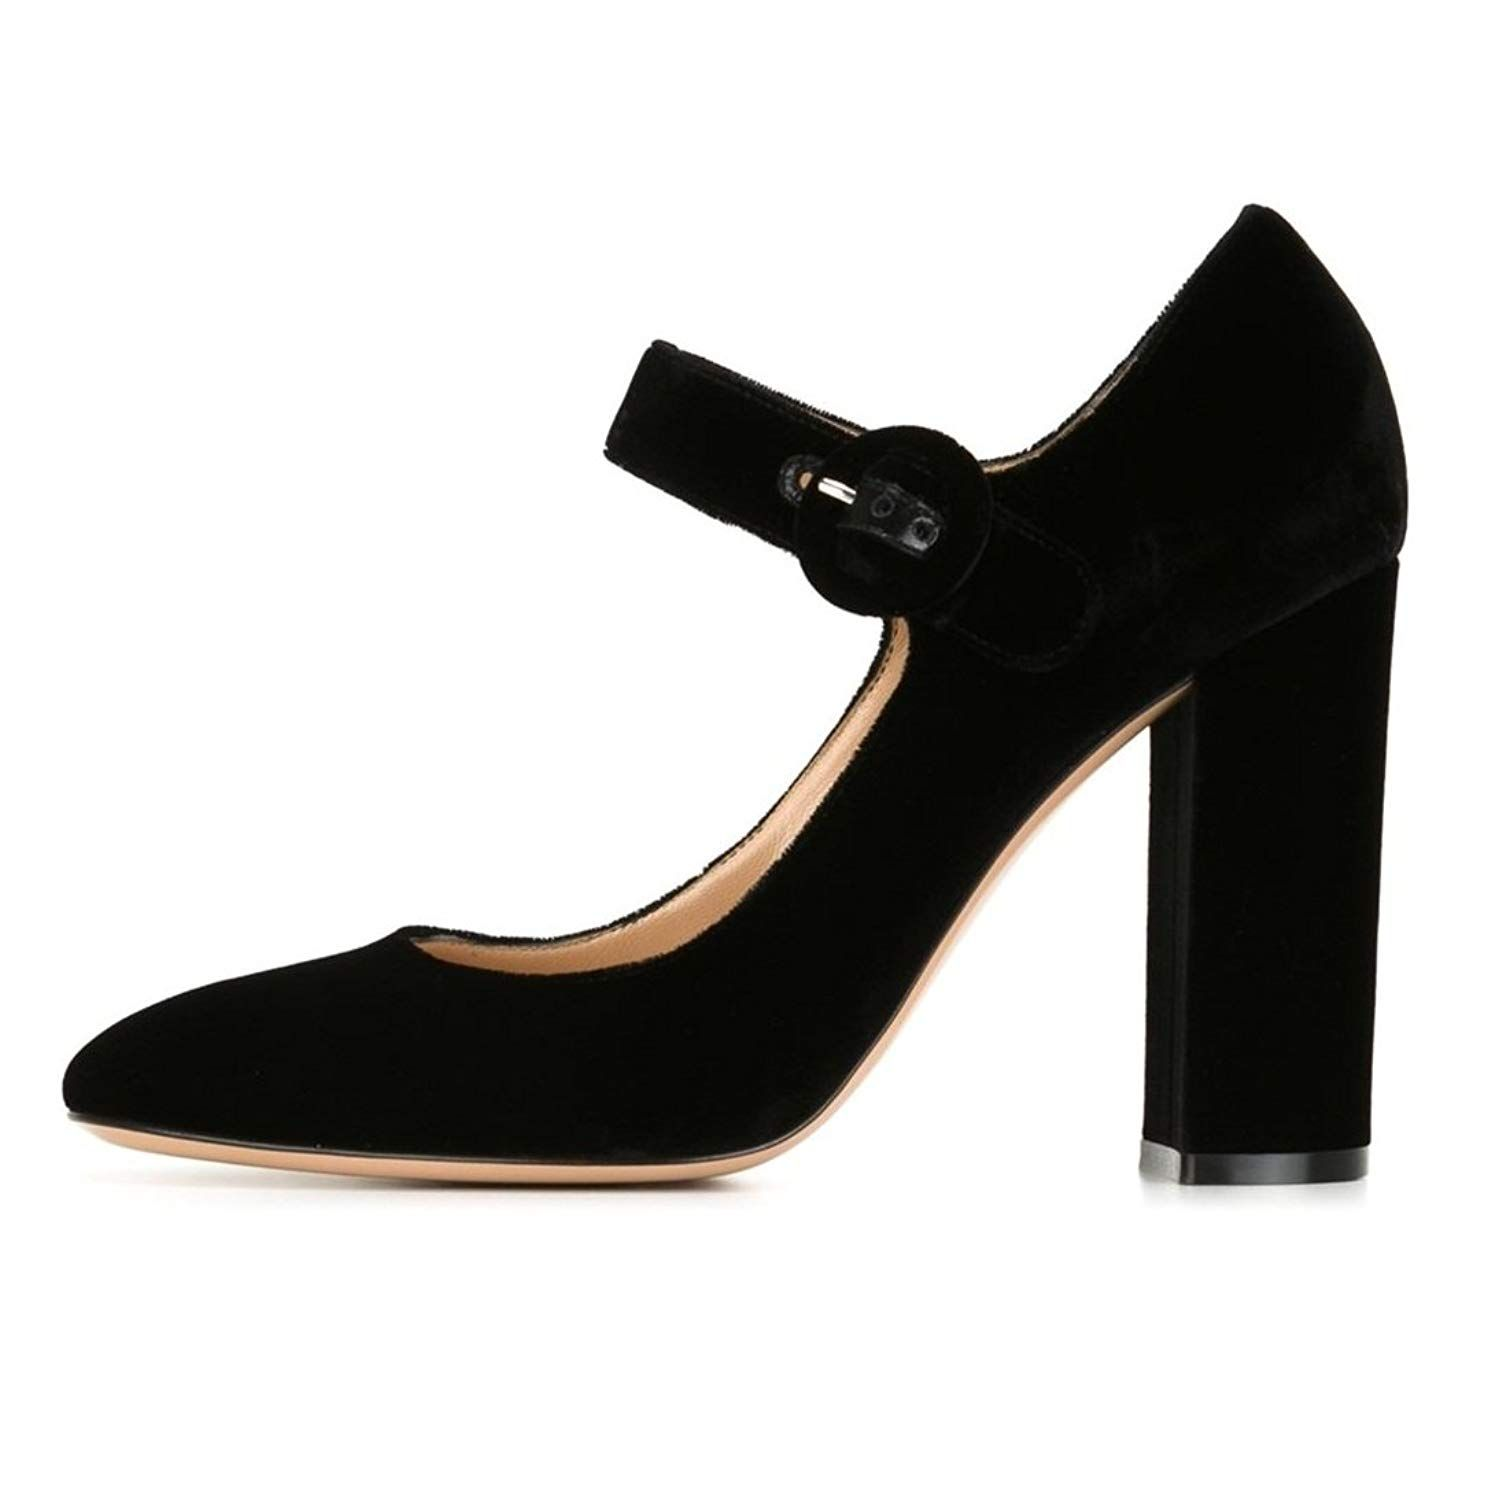 51f3746e55f Sammitop Women s 10cm Chunky Heel Mary Jane Pumps Round Toe High Heel Dress  Shoes. All